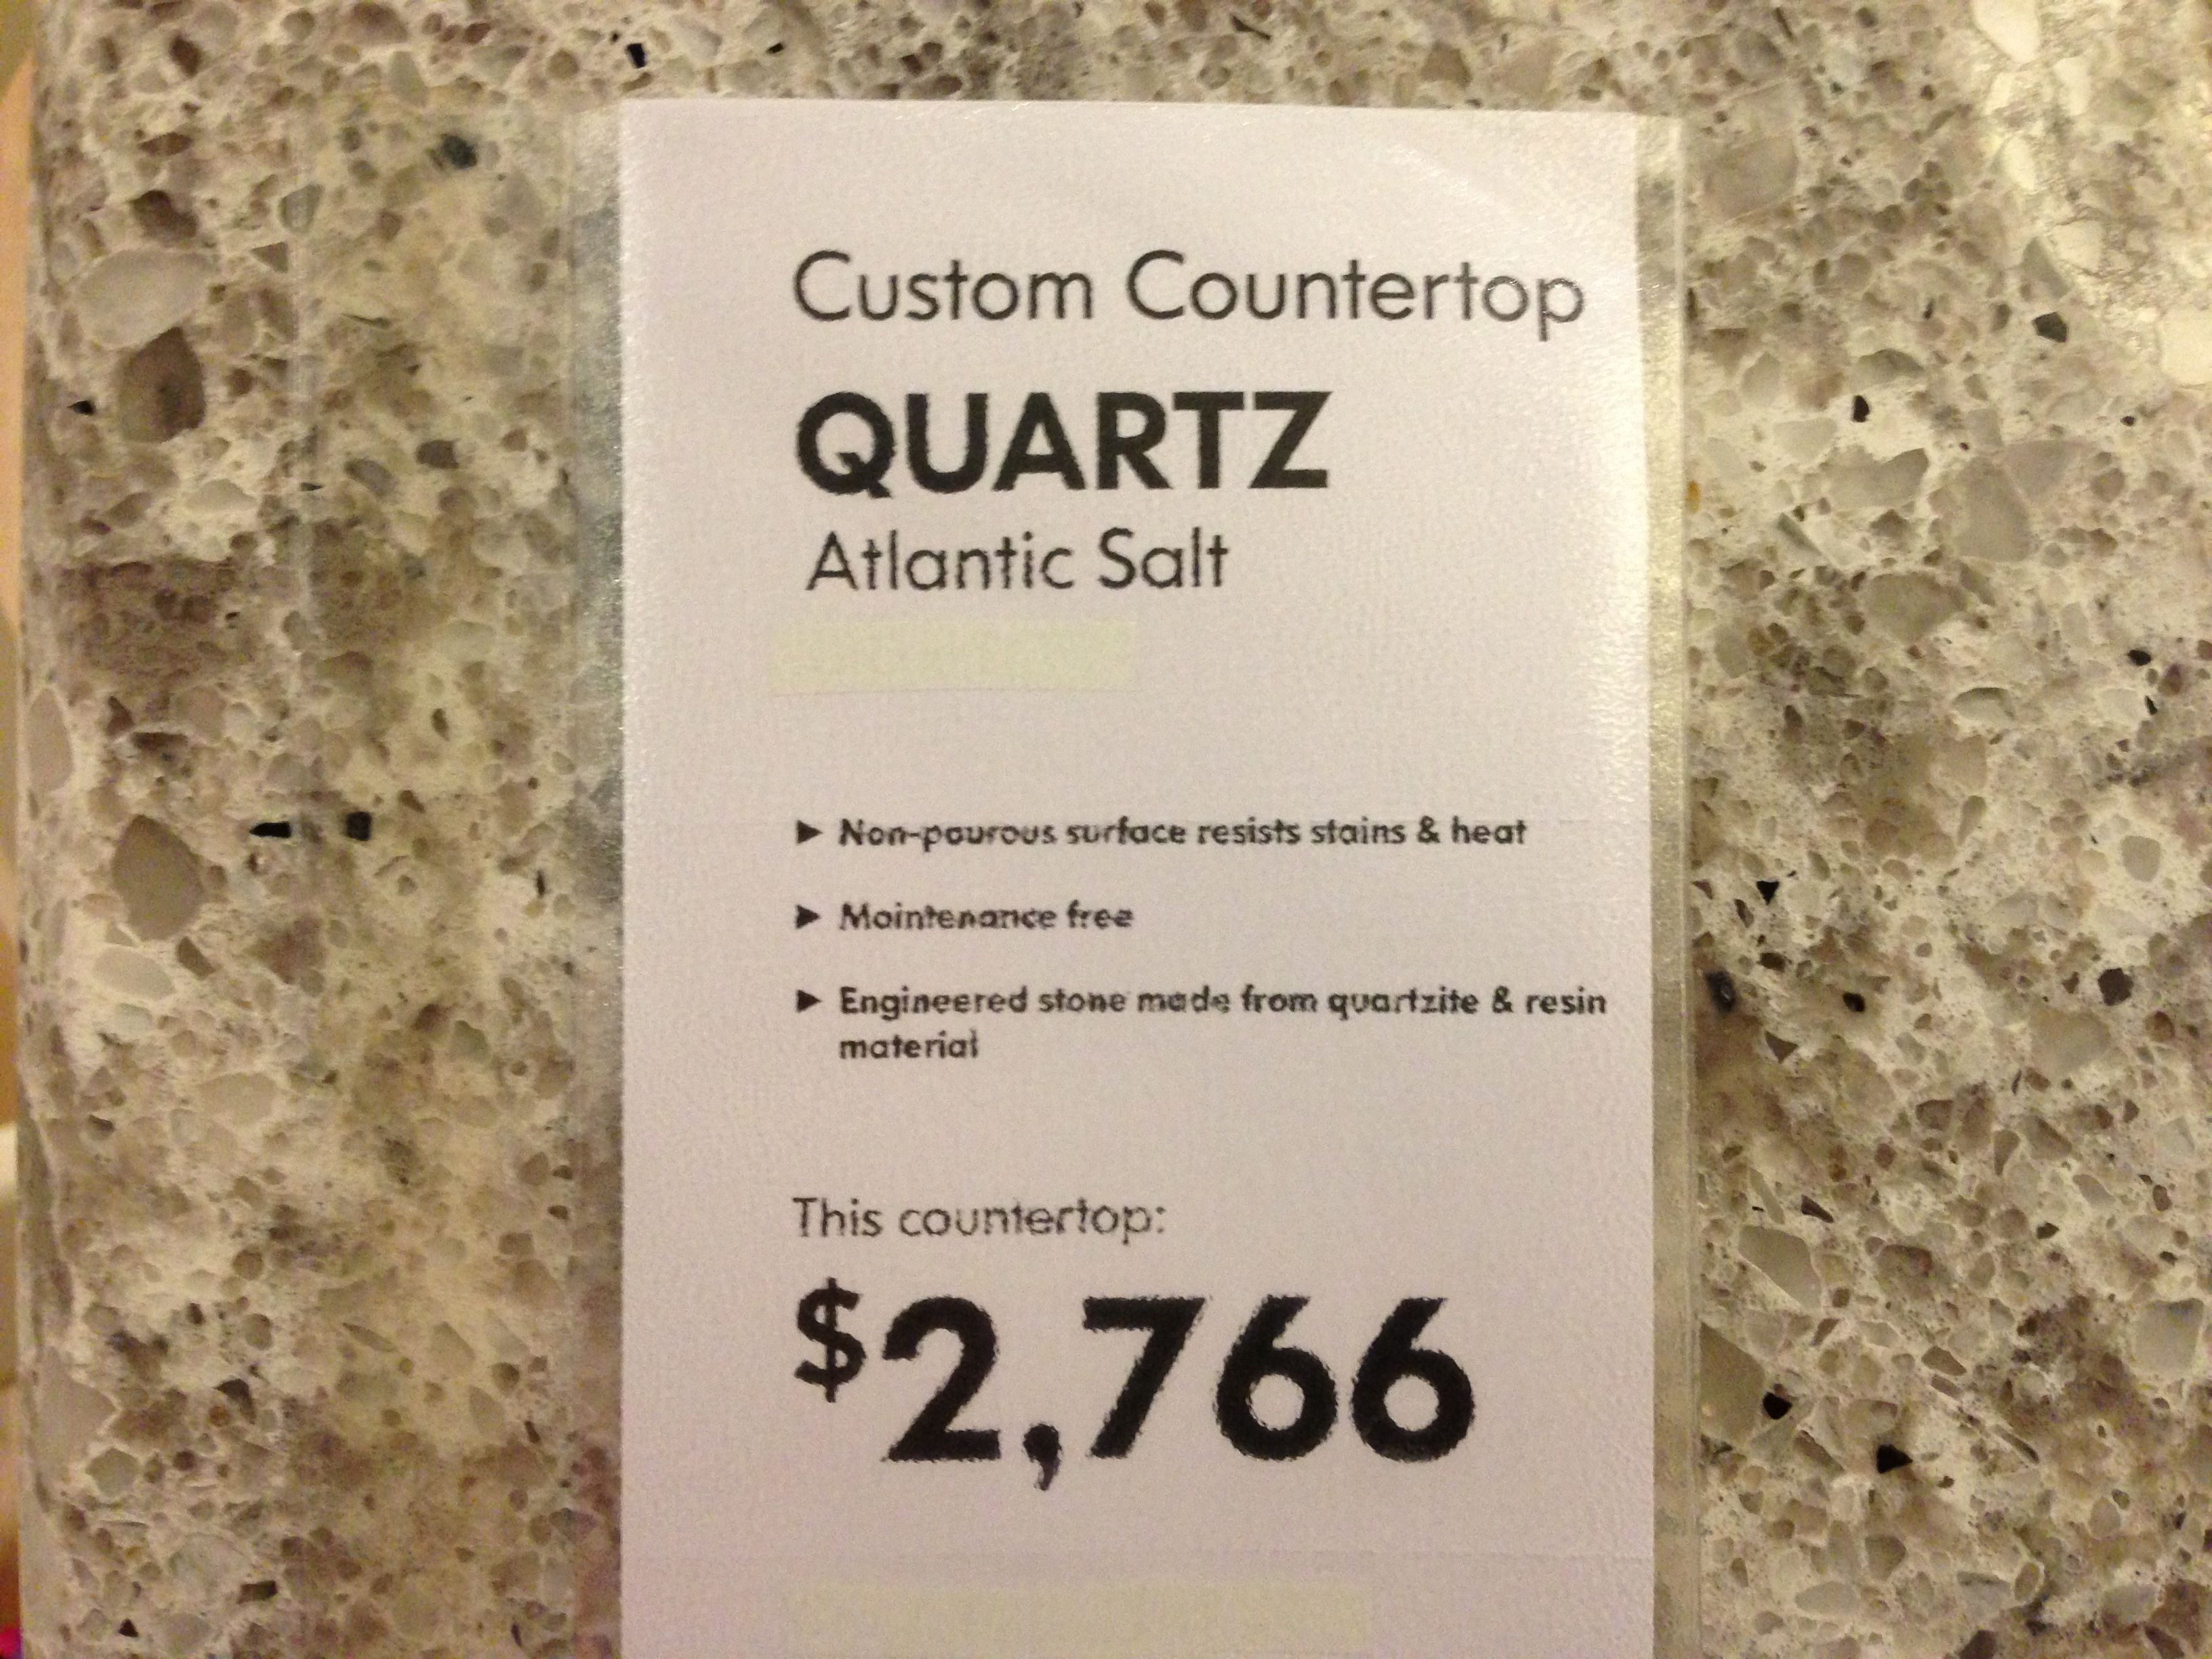 Countertop Quartz Price : ... , Bath Renovation, Quartz Countertops, Countertop Ikea, Kitchen Ideas